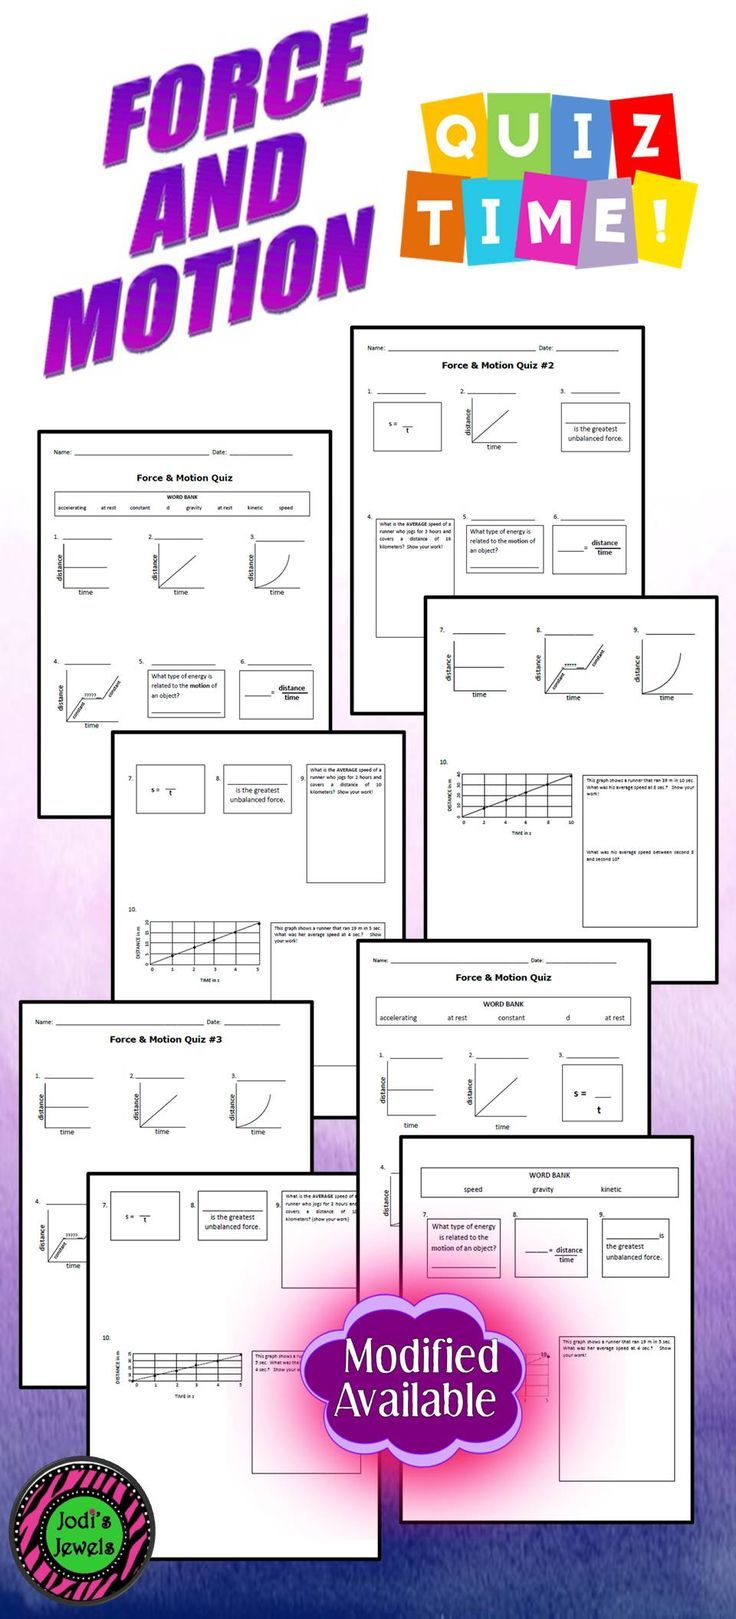 Quiz basic understanding of introductory force and motion vocab and quiz basic understanding of introductory force and motion vocab and motion graphs with these quizzes by jodis jewels modified version is also ava ccuart Images